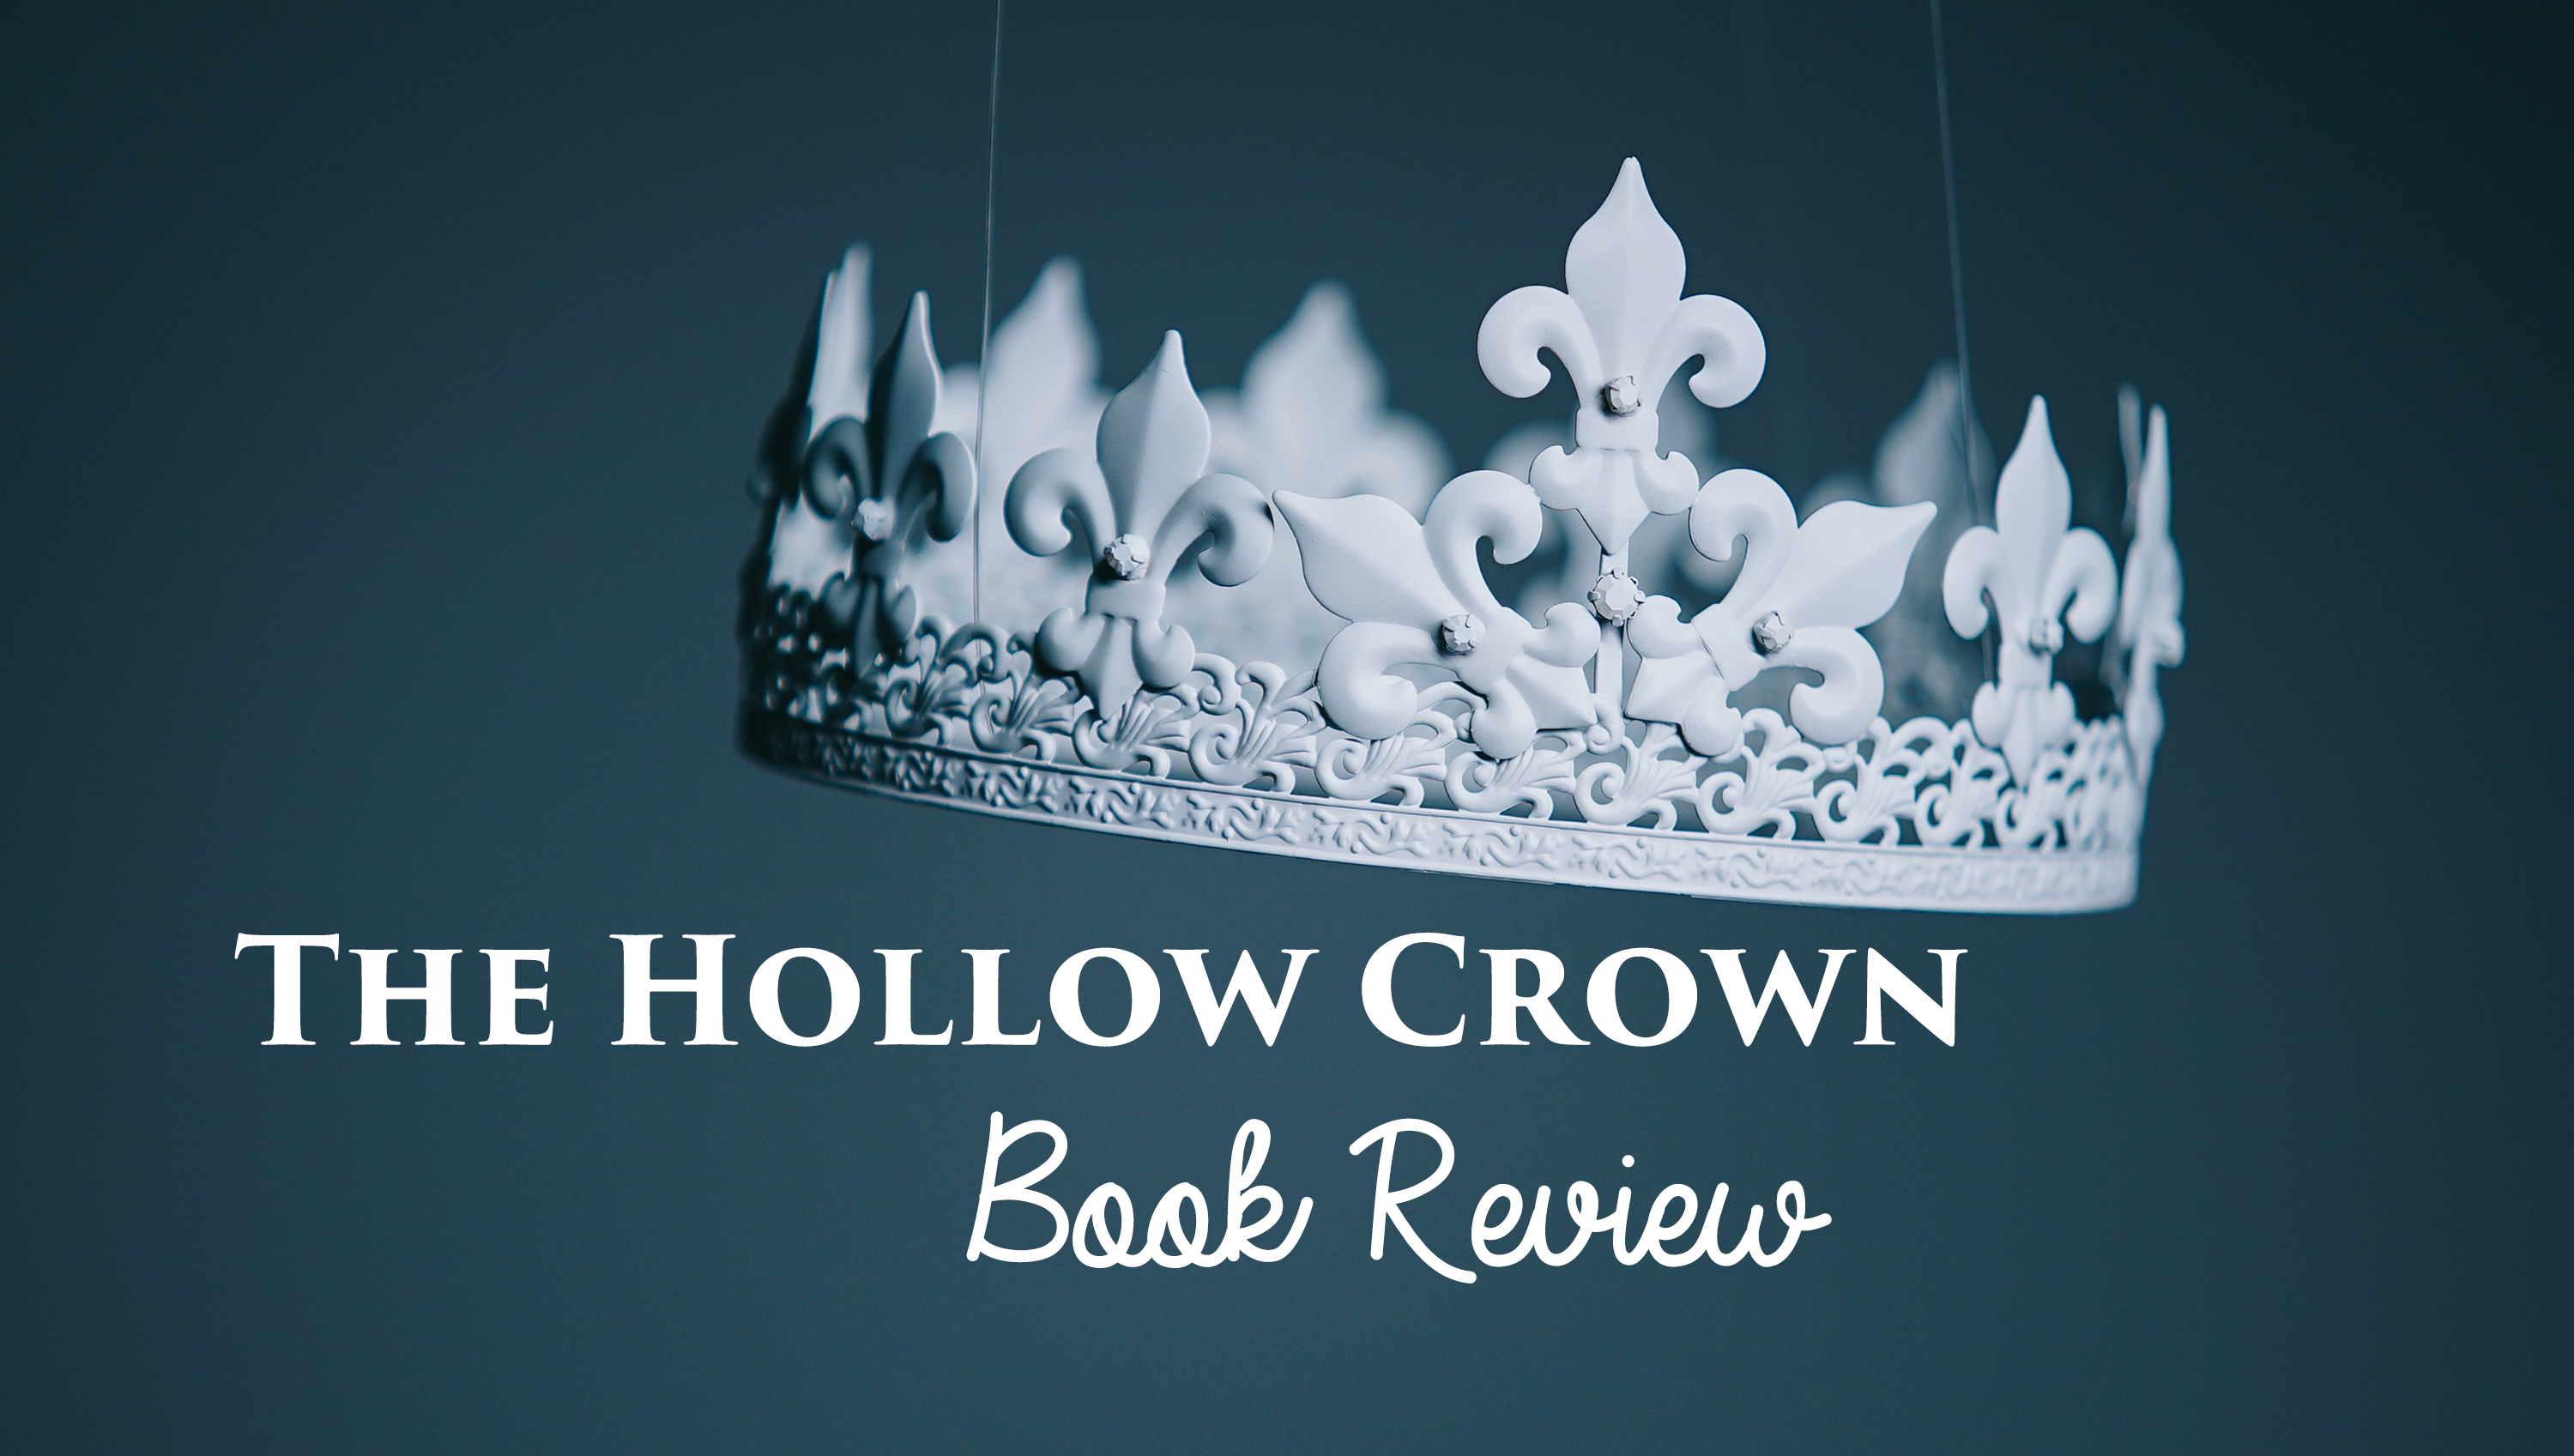 Book Review: A Hollow Crown